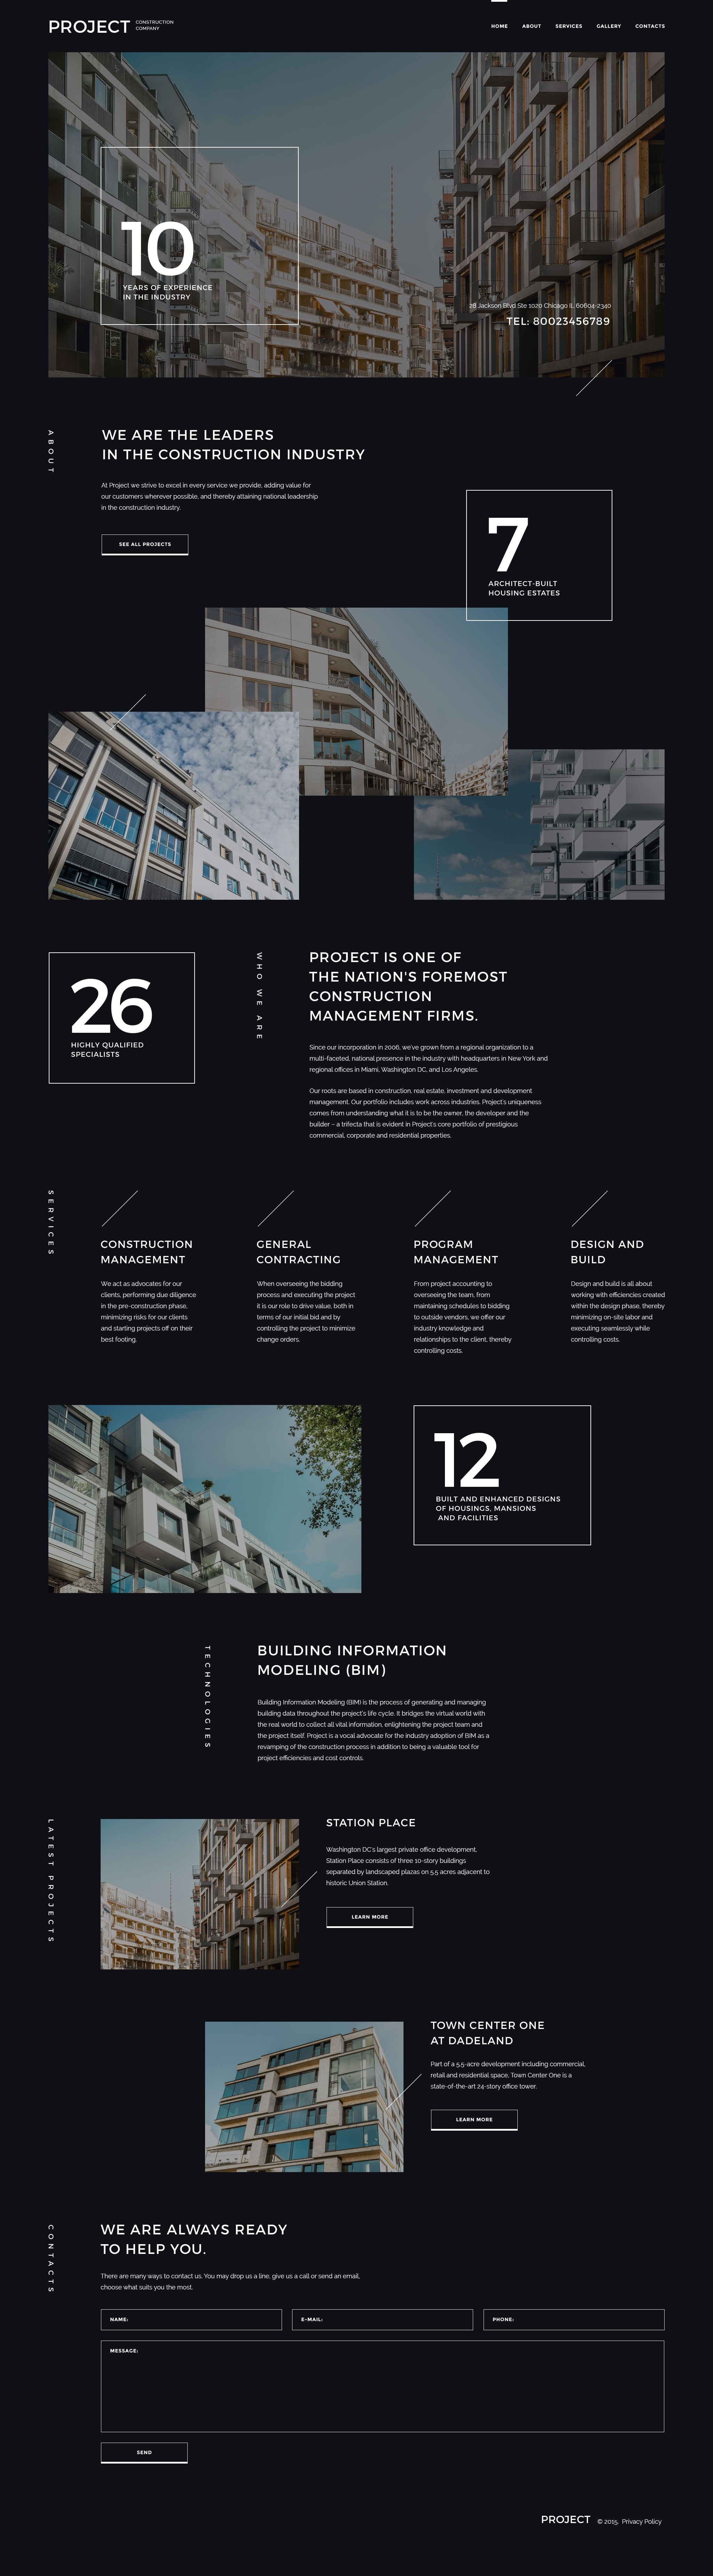 Project Construction Company Template Web №57947